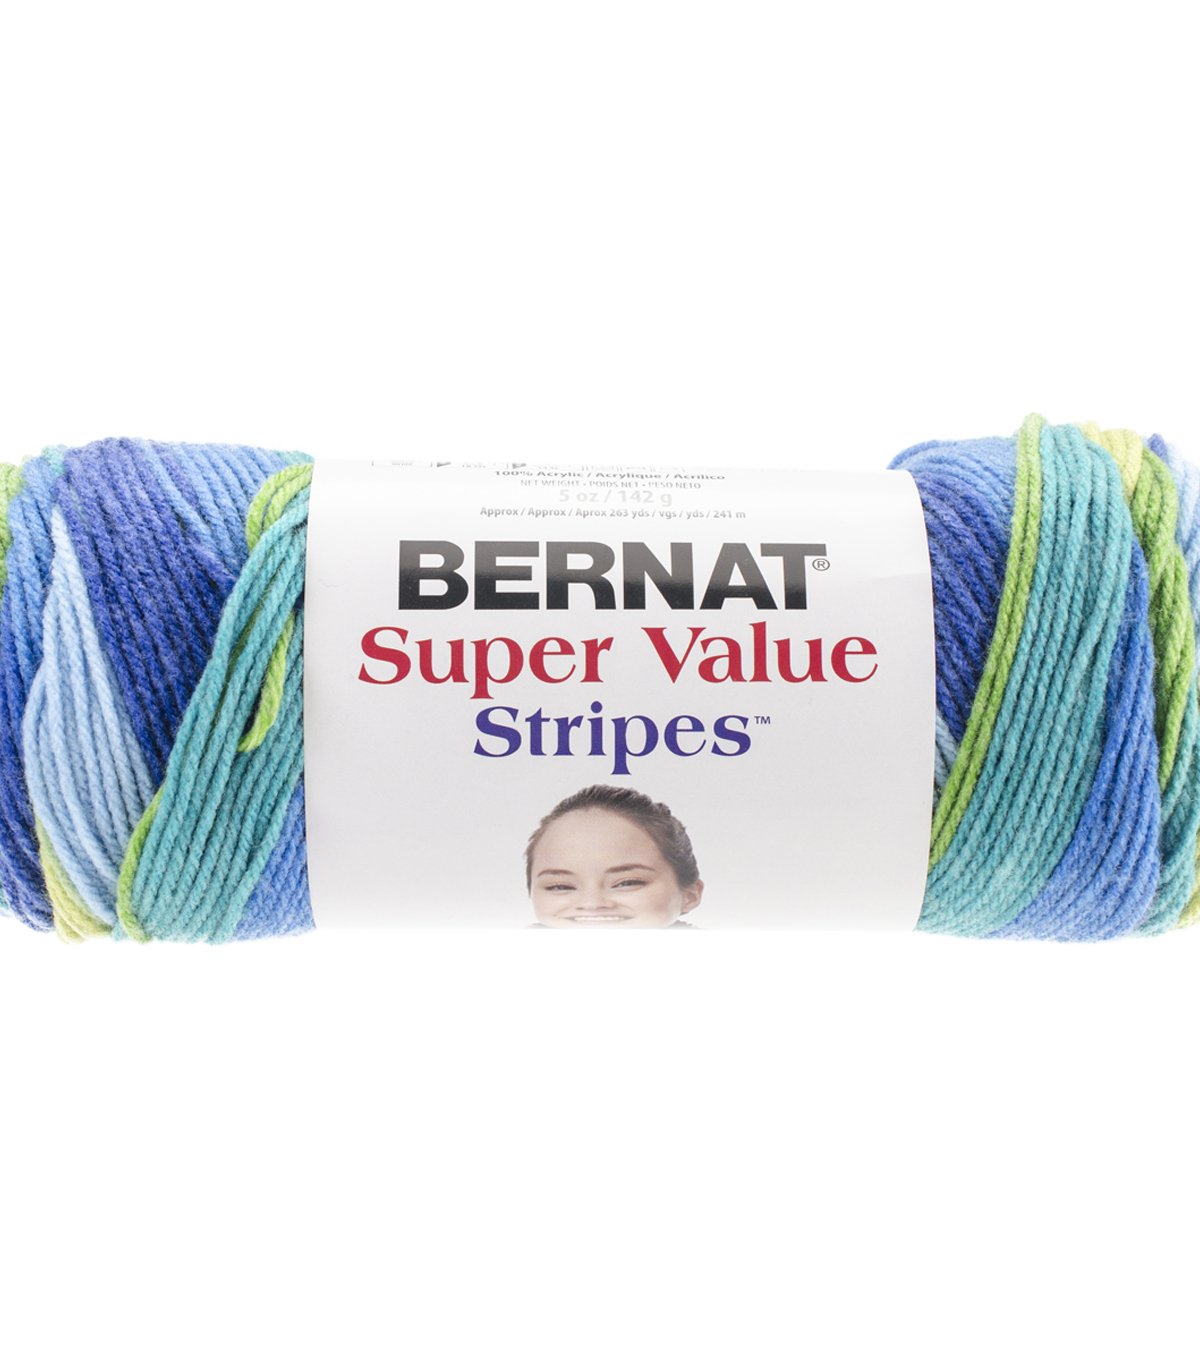 Bernat Super Value Stripes Yarn, Meadow